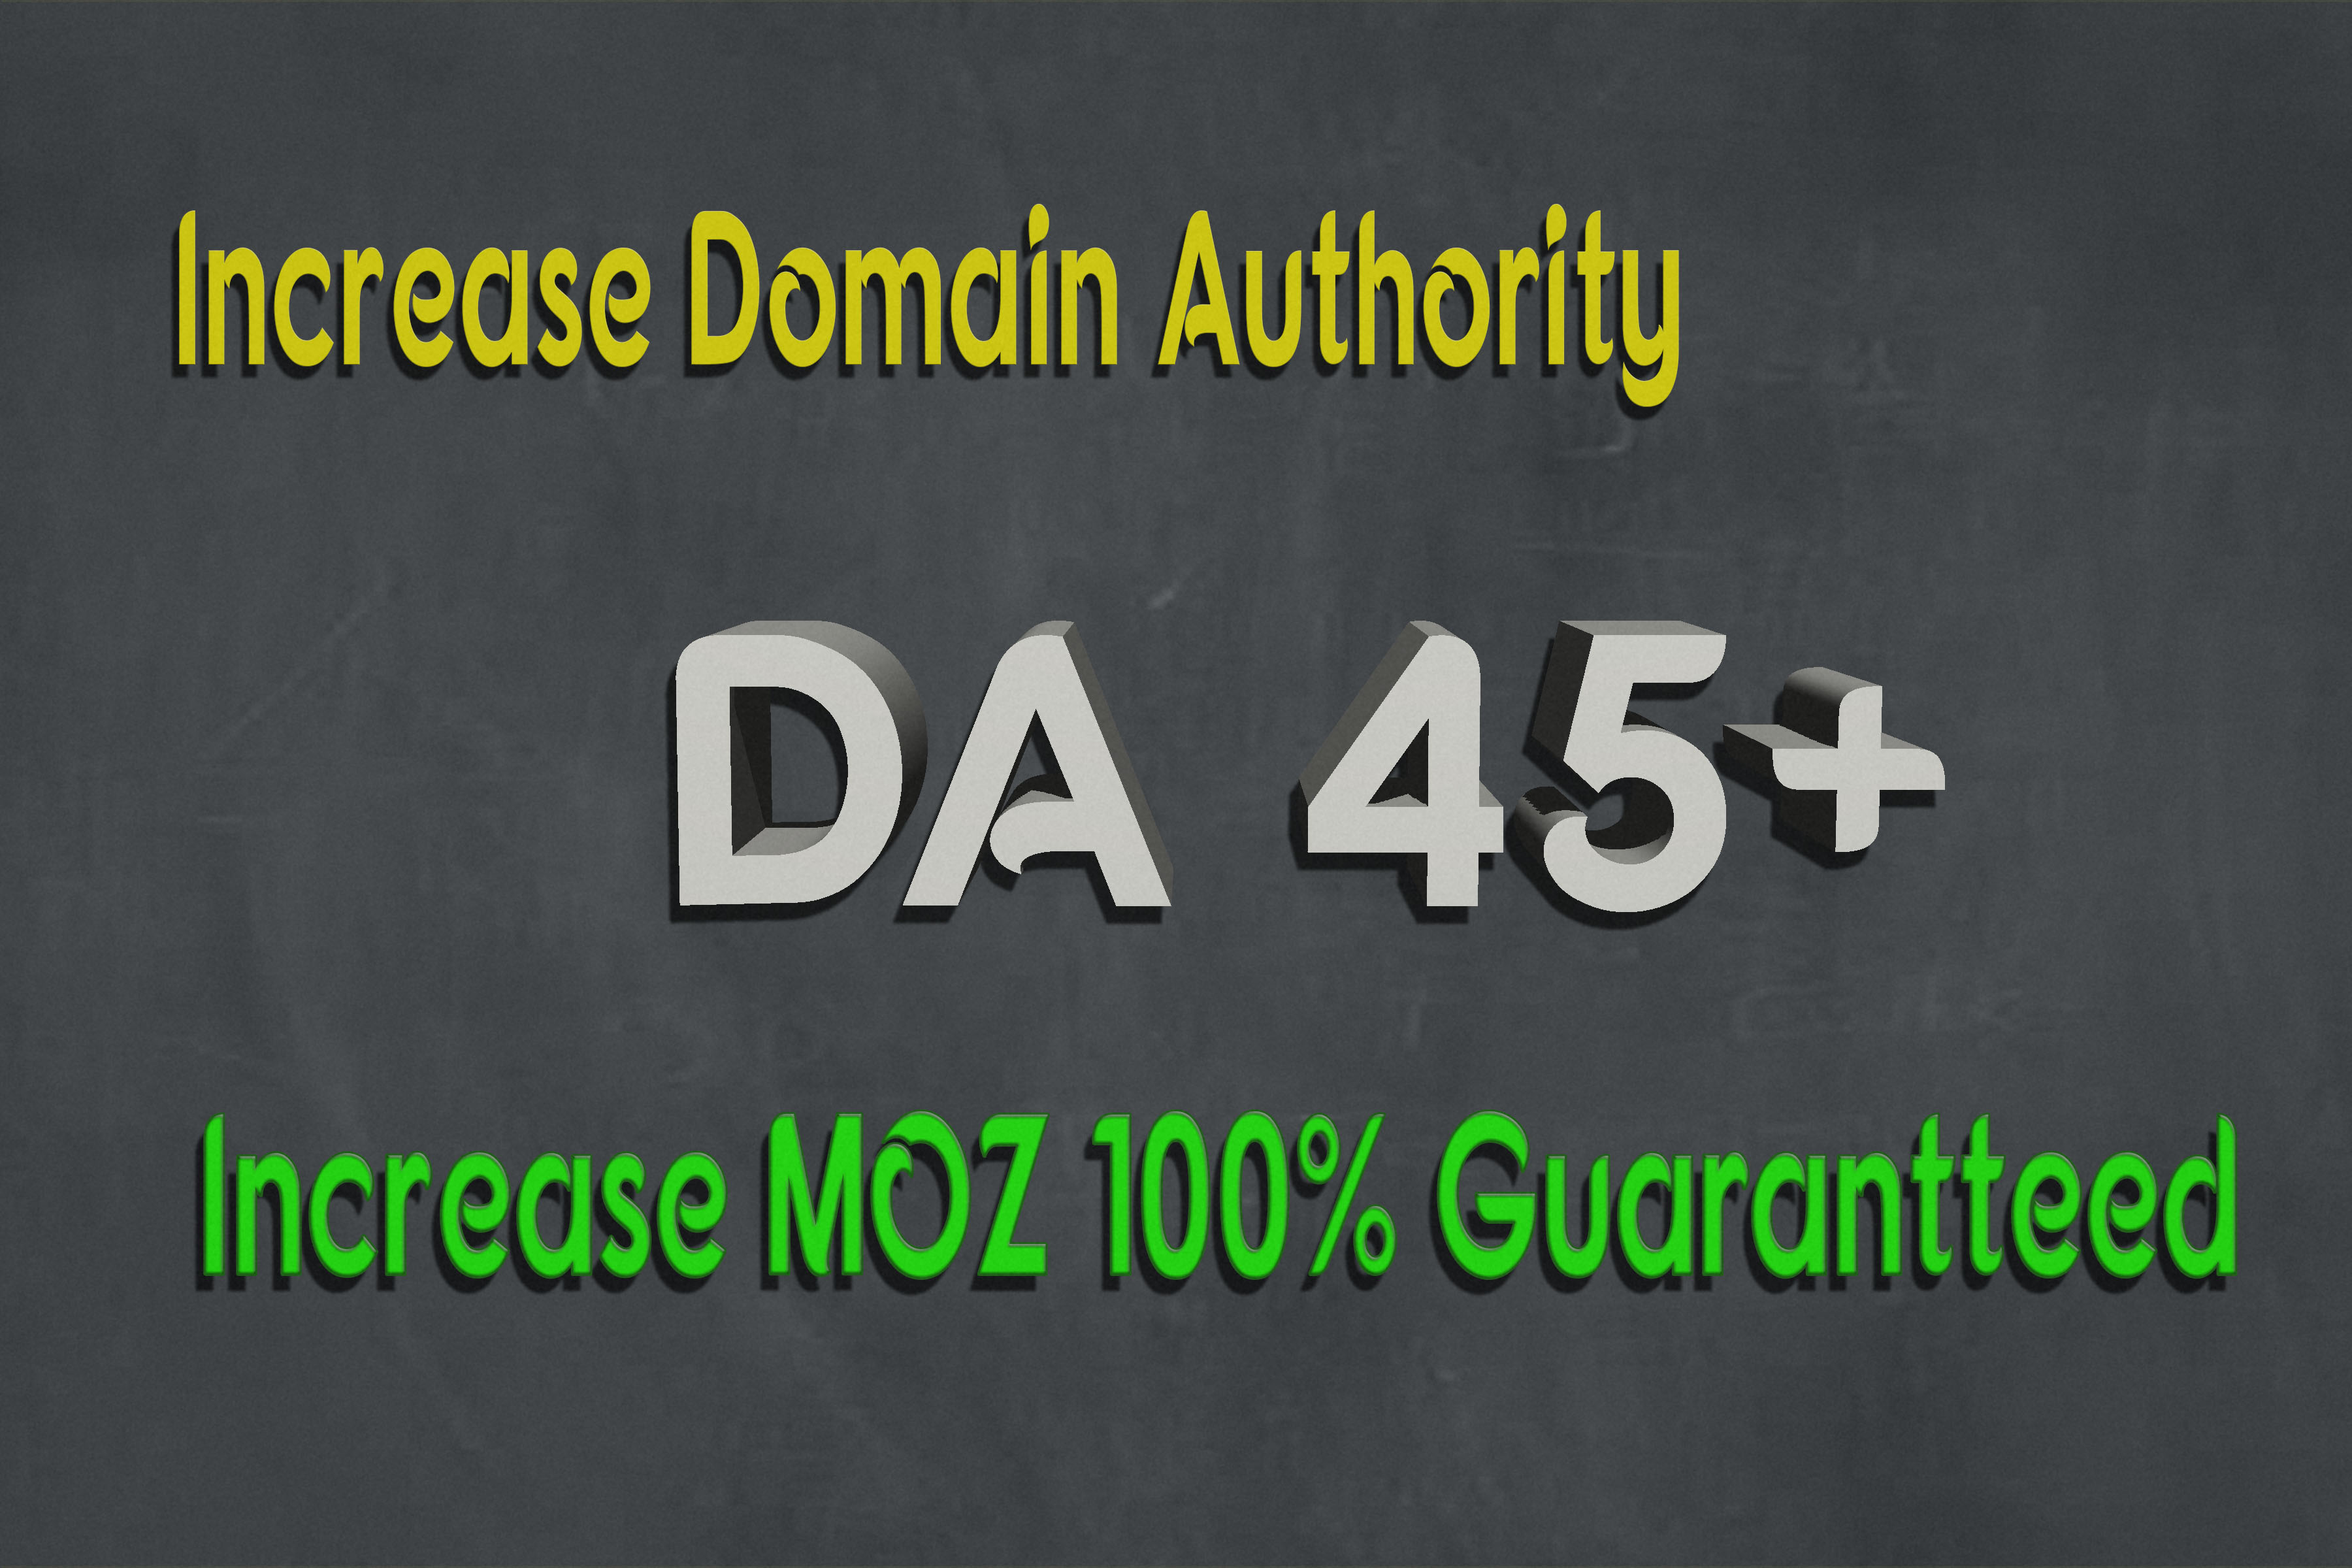 Increase your website MOZ DA45+ Permanent Domain Authority using SEO backlines no spams